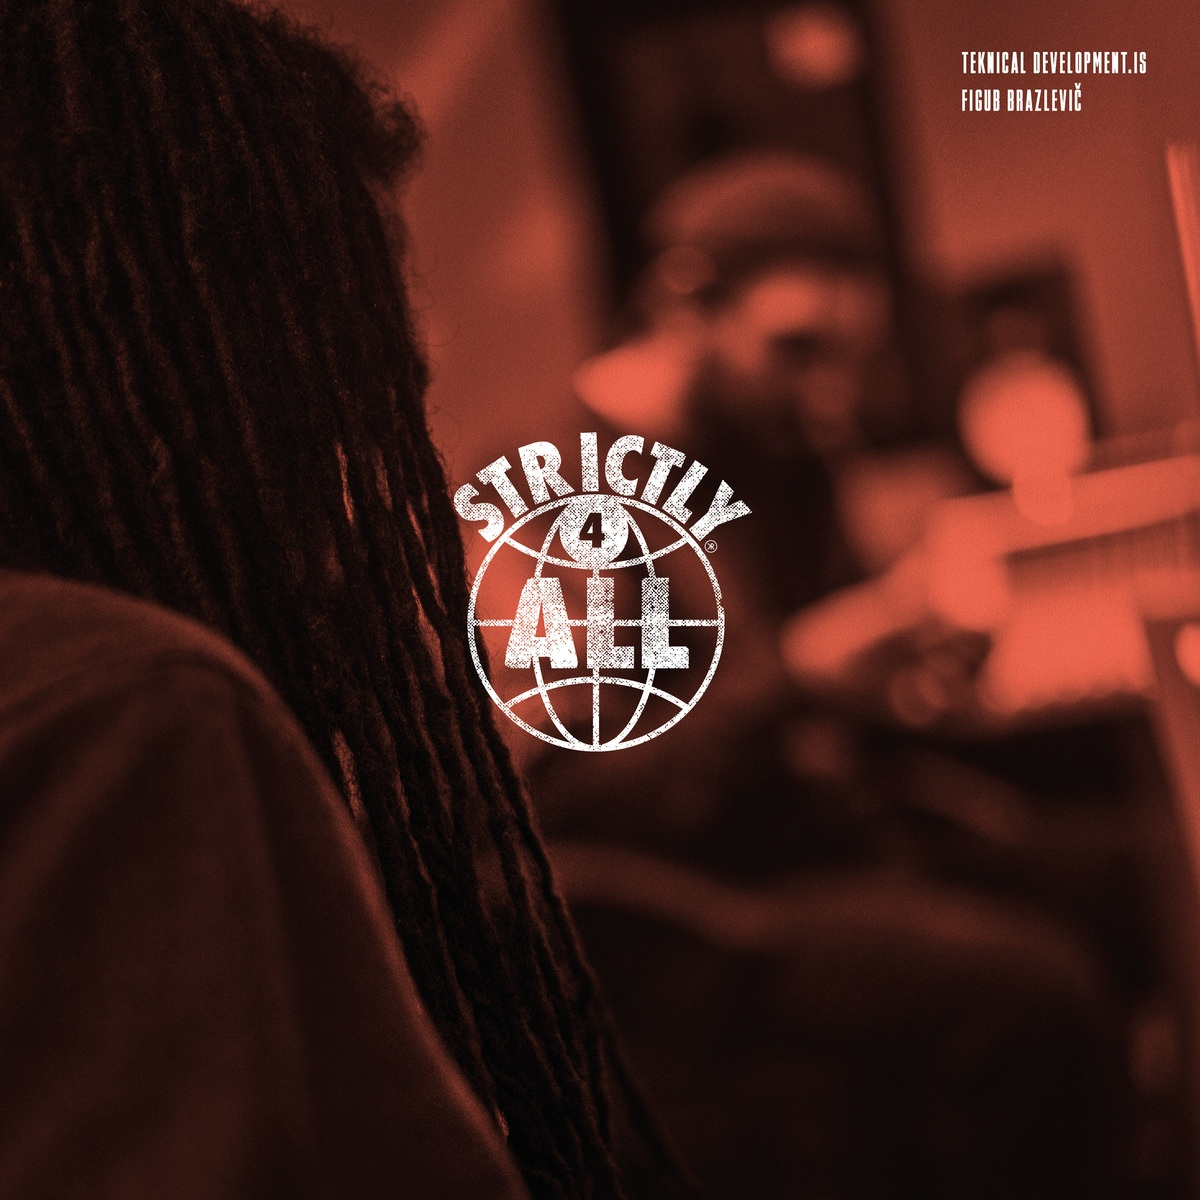 Teknical Development.IS & Figub Brazlevic — «Strictly 4 All»